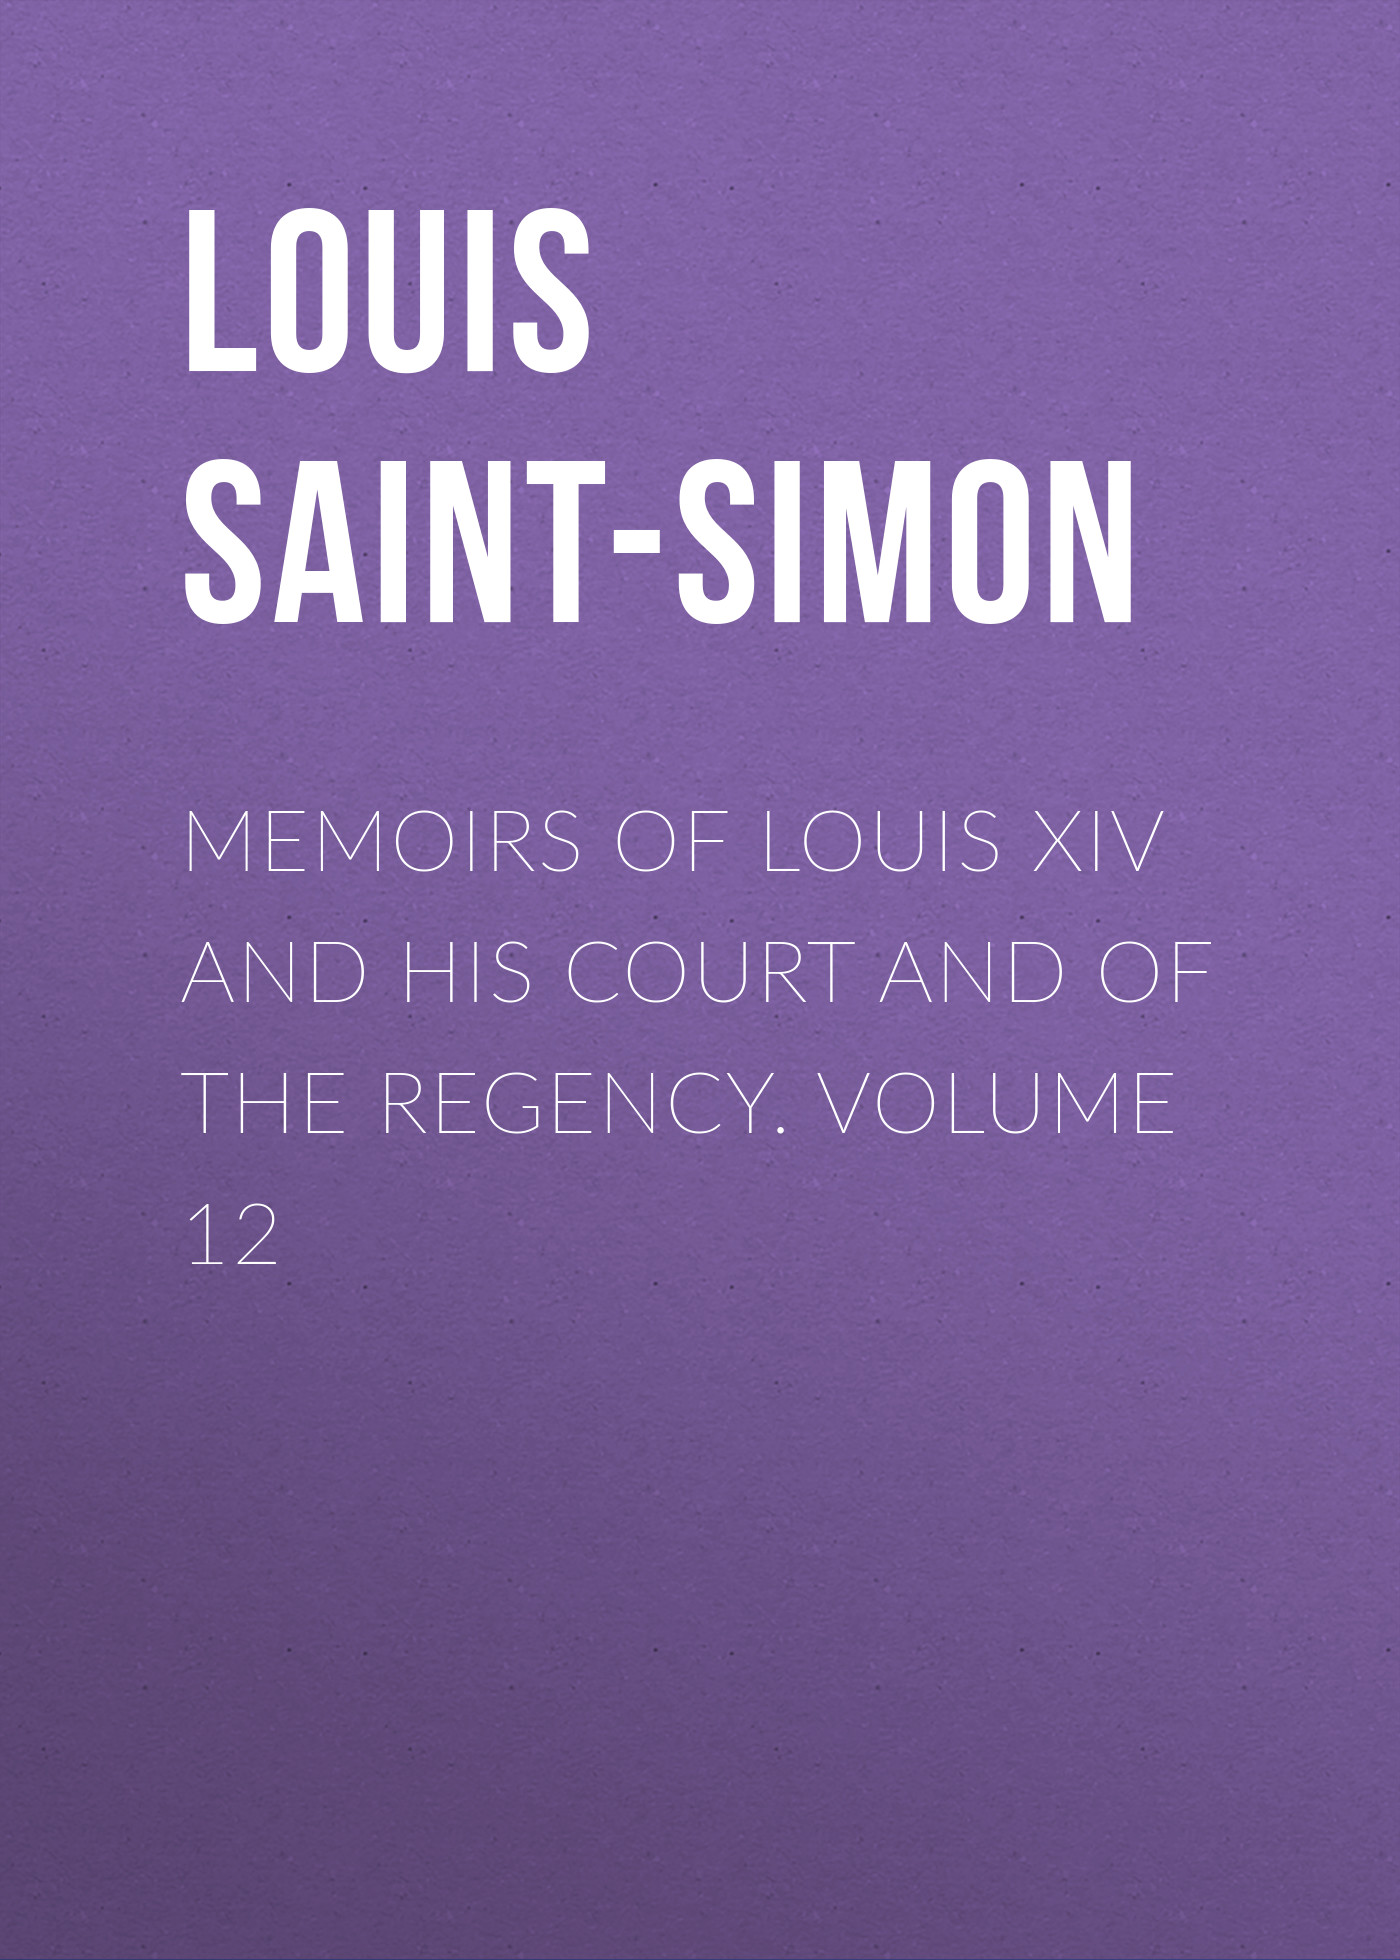 Louis Saint-Simon Memoirs of Louis XIV and His Court and of the Regency. Volume 12